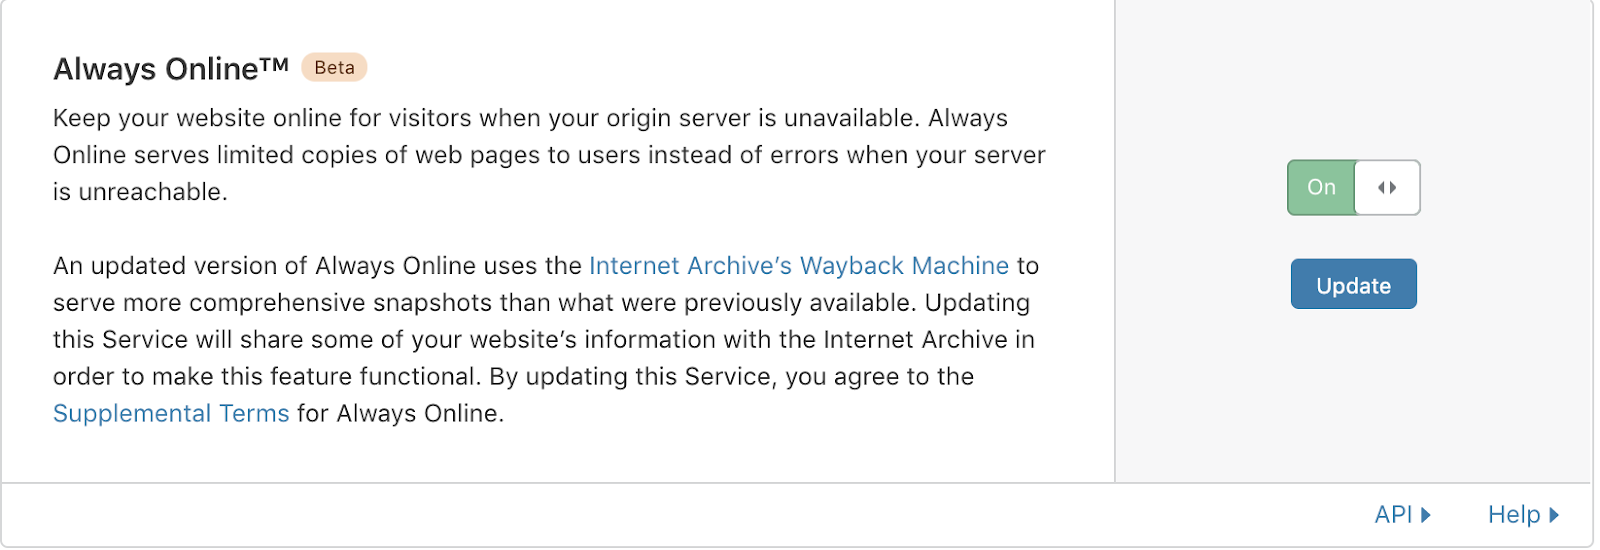 Cloudflare's Always Online and the Internet Archive Team Up to Fight Origin Errors